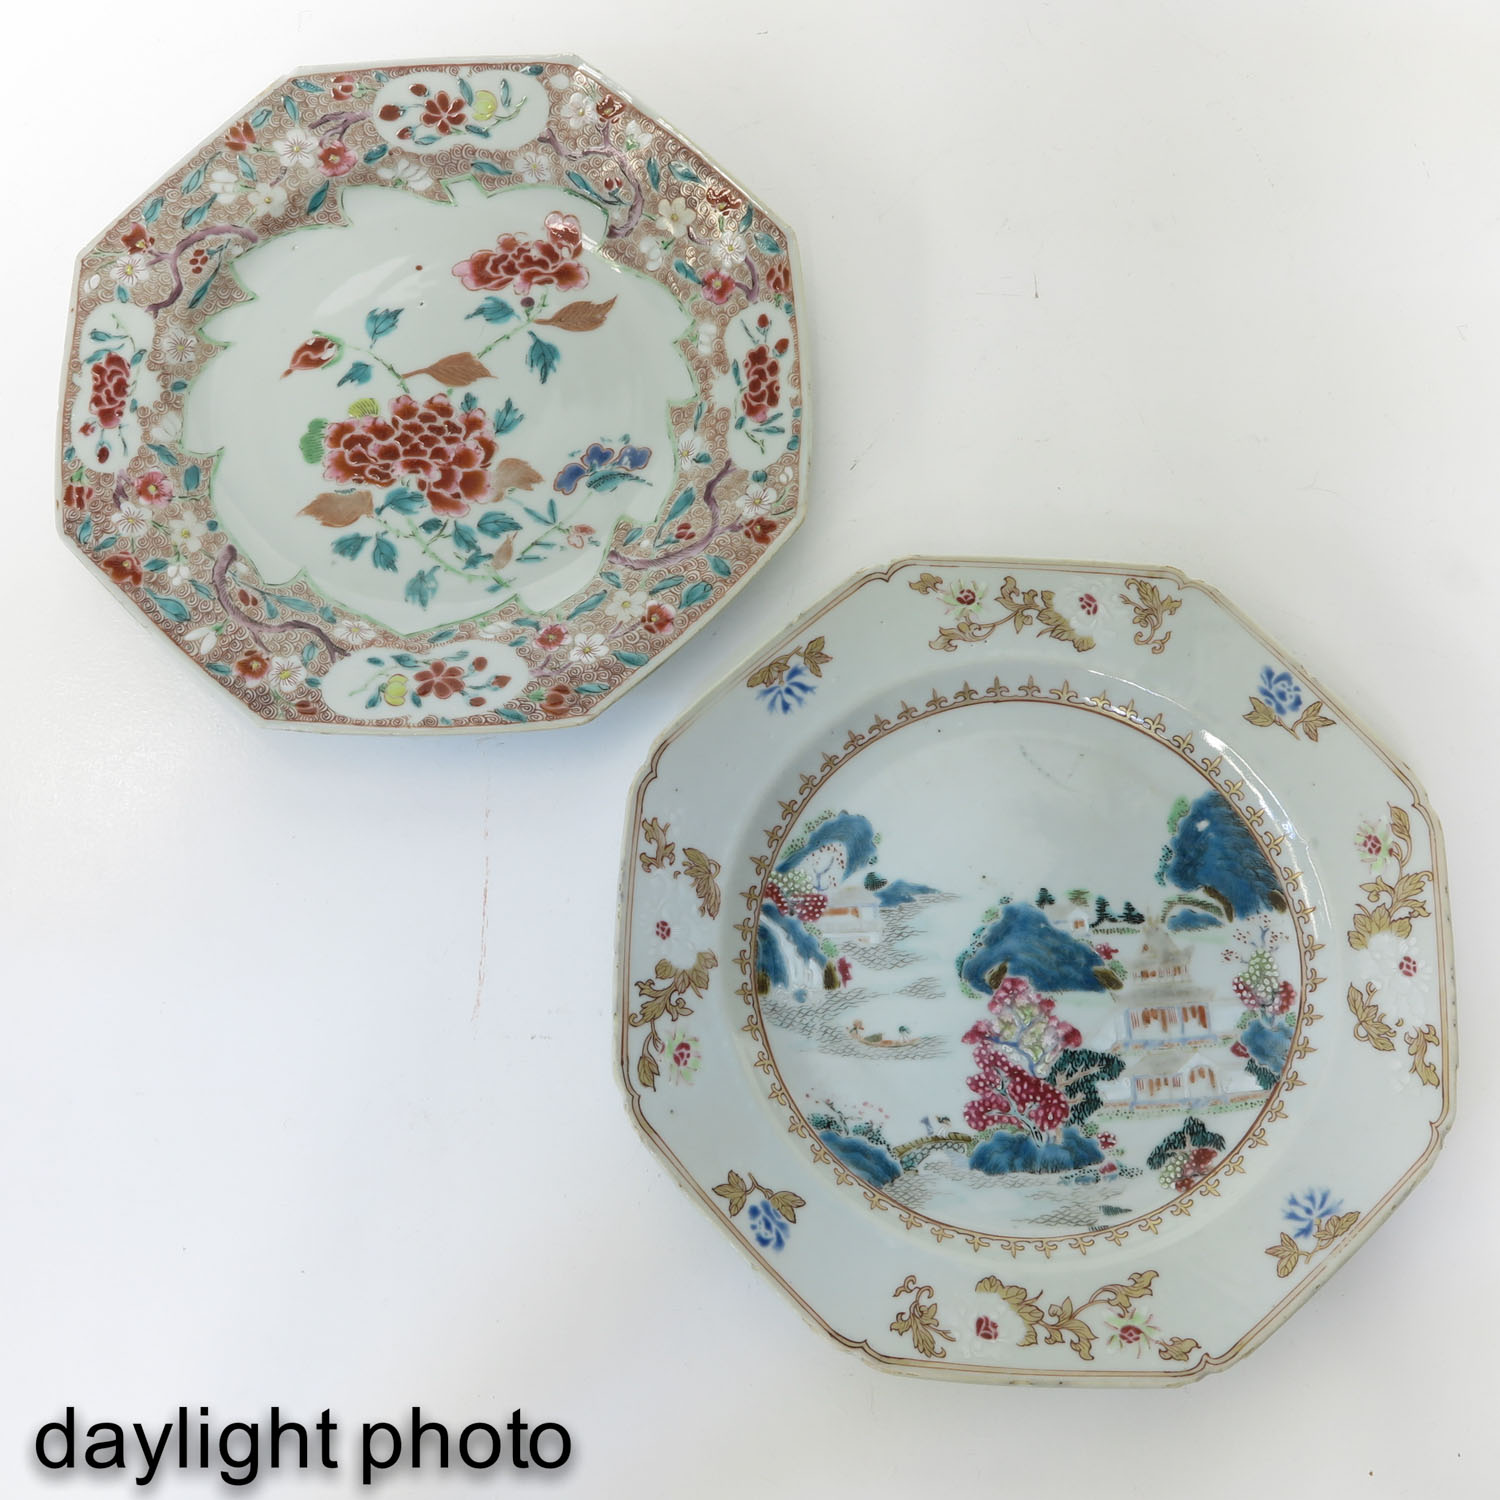 A Lot of 2 Famille Rose Plates - Image 7 of 10